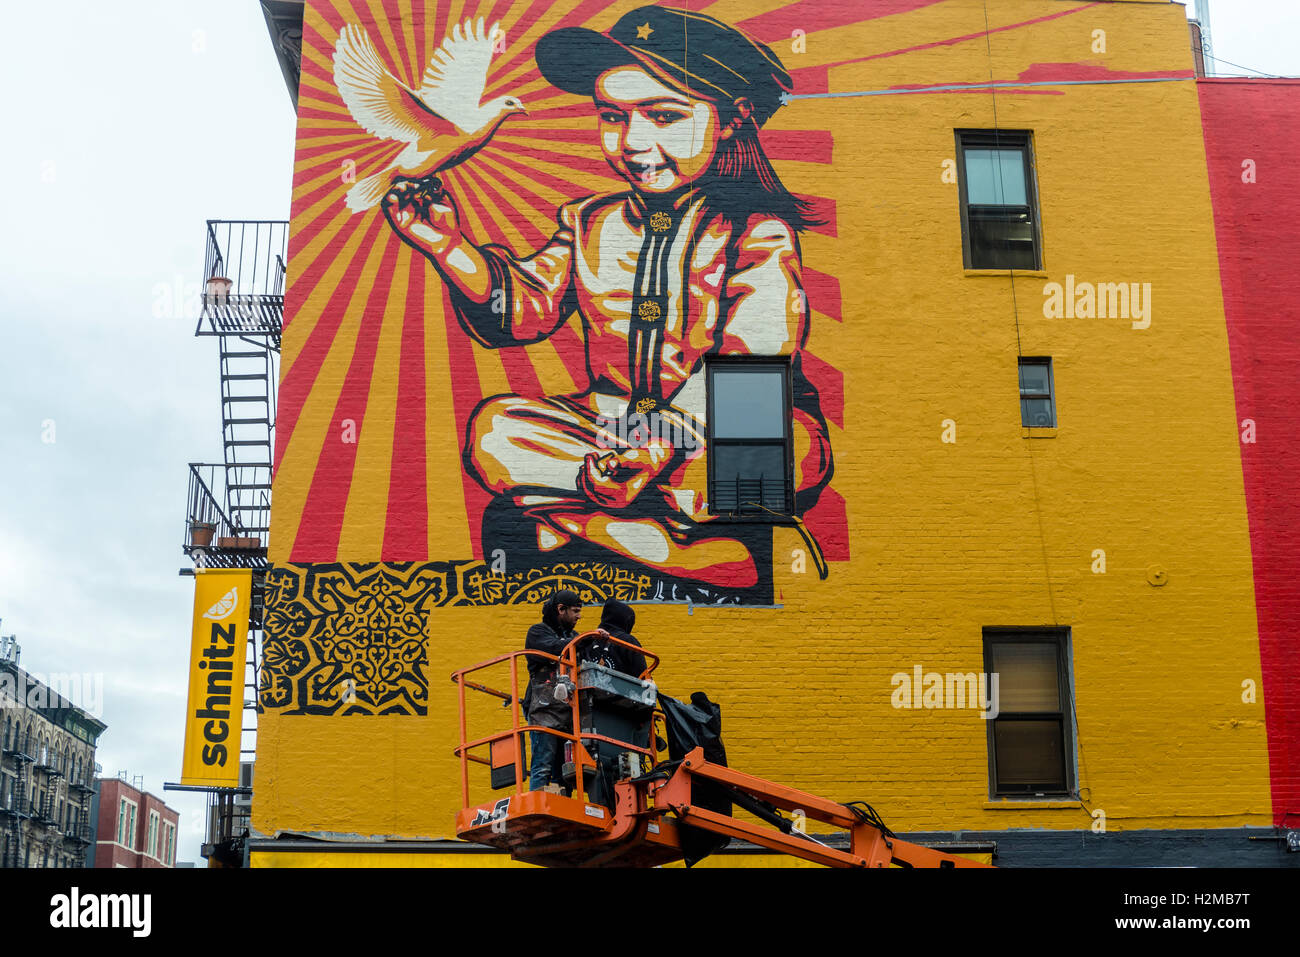 New York, NY 29 September 2016 Shepard Fairey mural goes up on the wall of a building in New York City's East - Stock Image